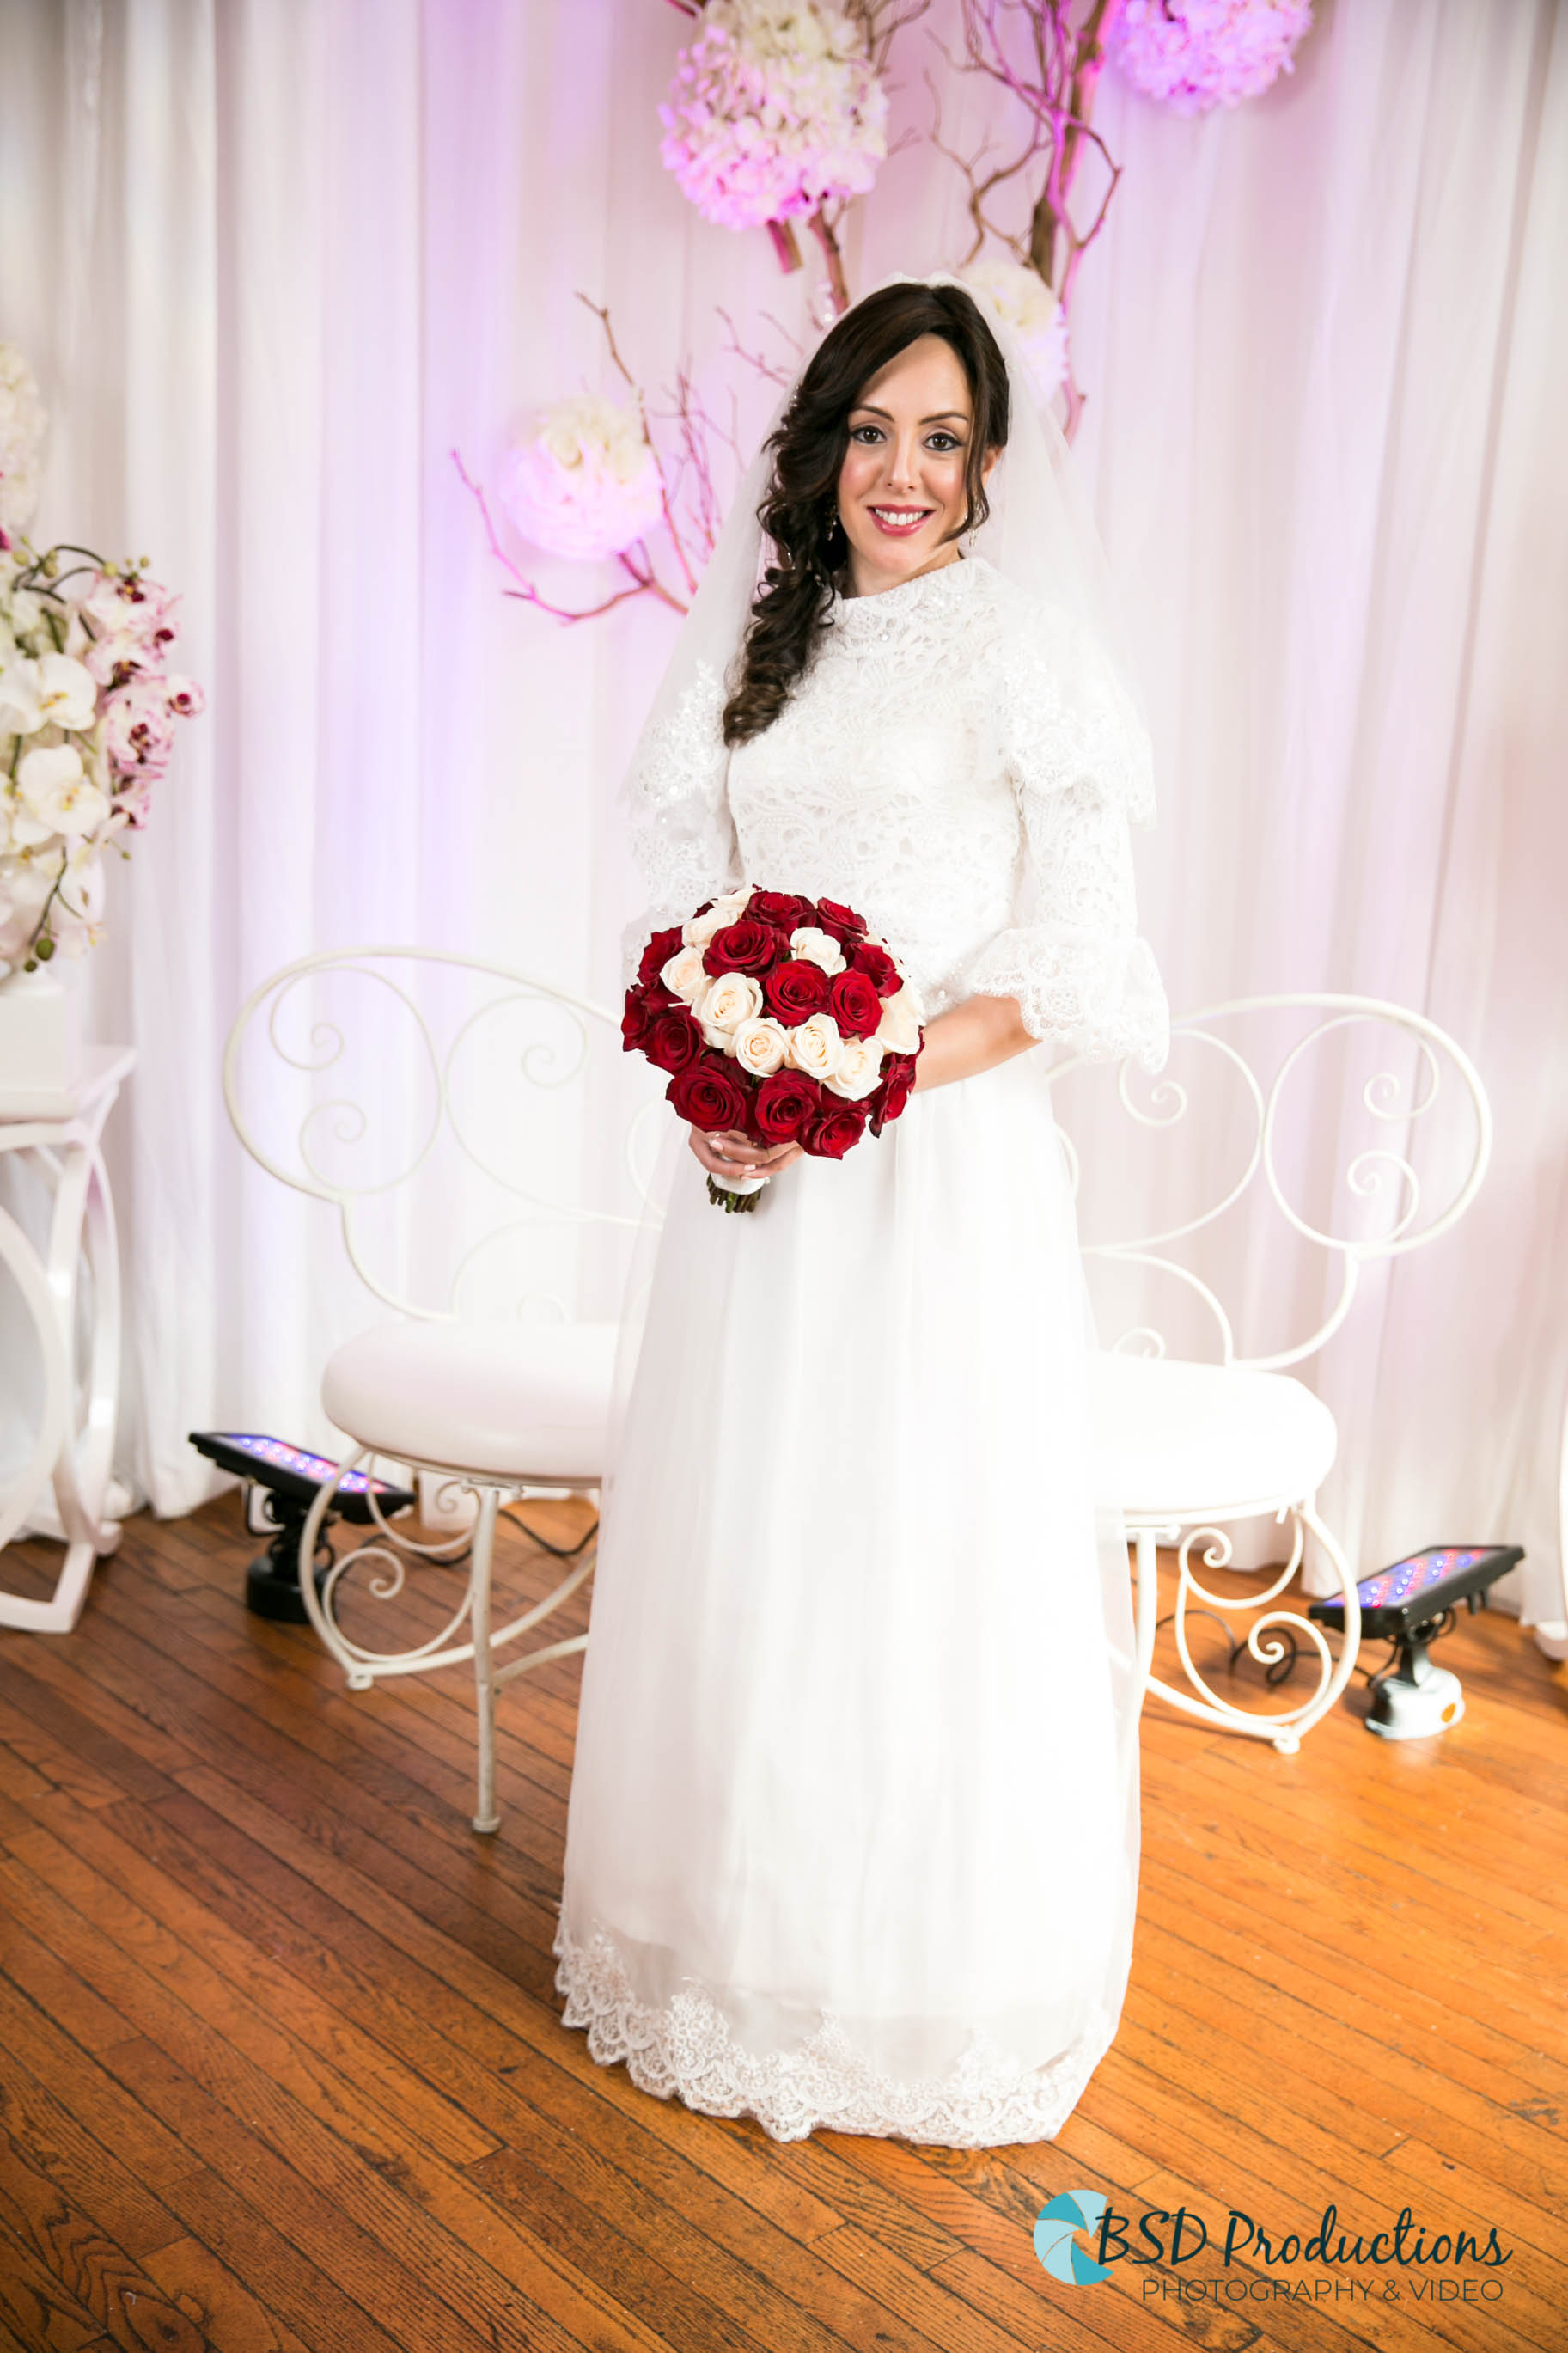 UH5A2441 Wedding – BSD Productions Photography